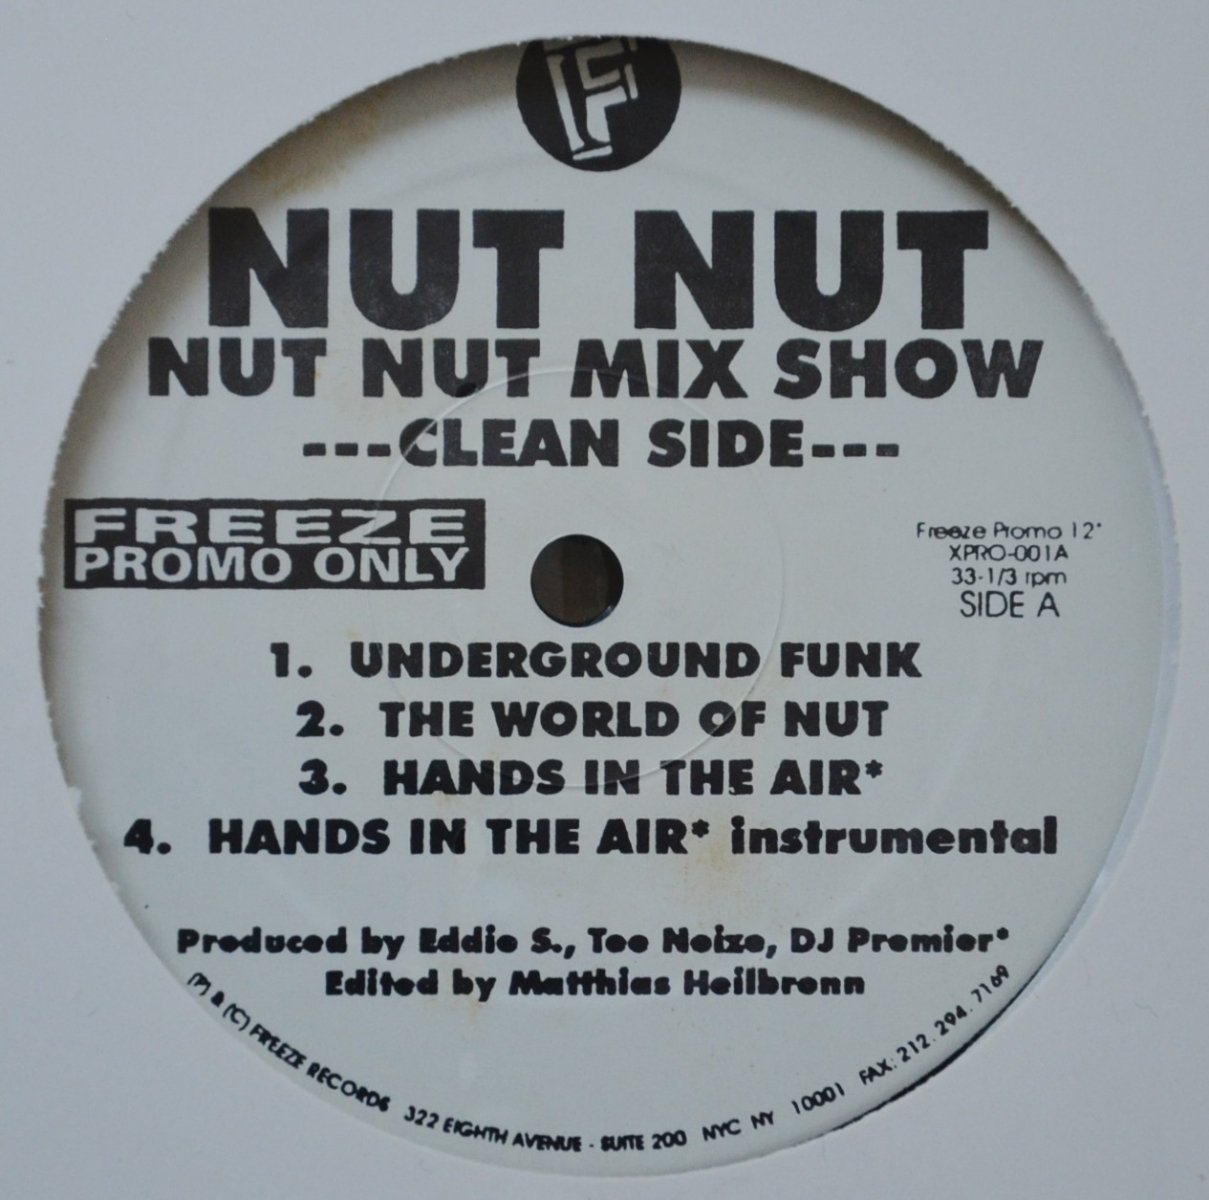 NUT NUT ‎/ UNDERGROUND FUNK / HANDS IN THE AIR (PROD BY DJ PREMIER) (NUT NUT MIX SHOW) (12